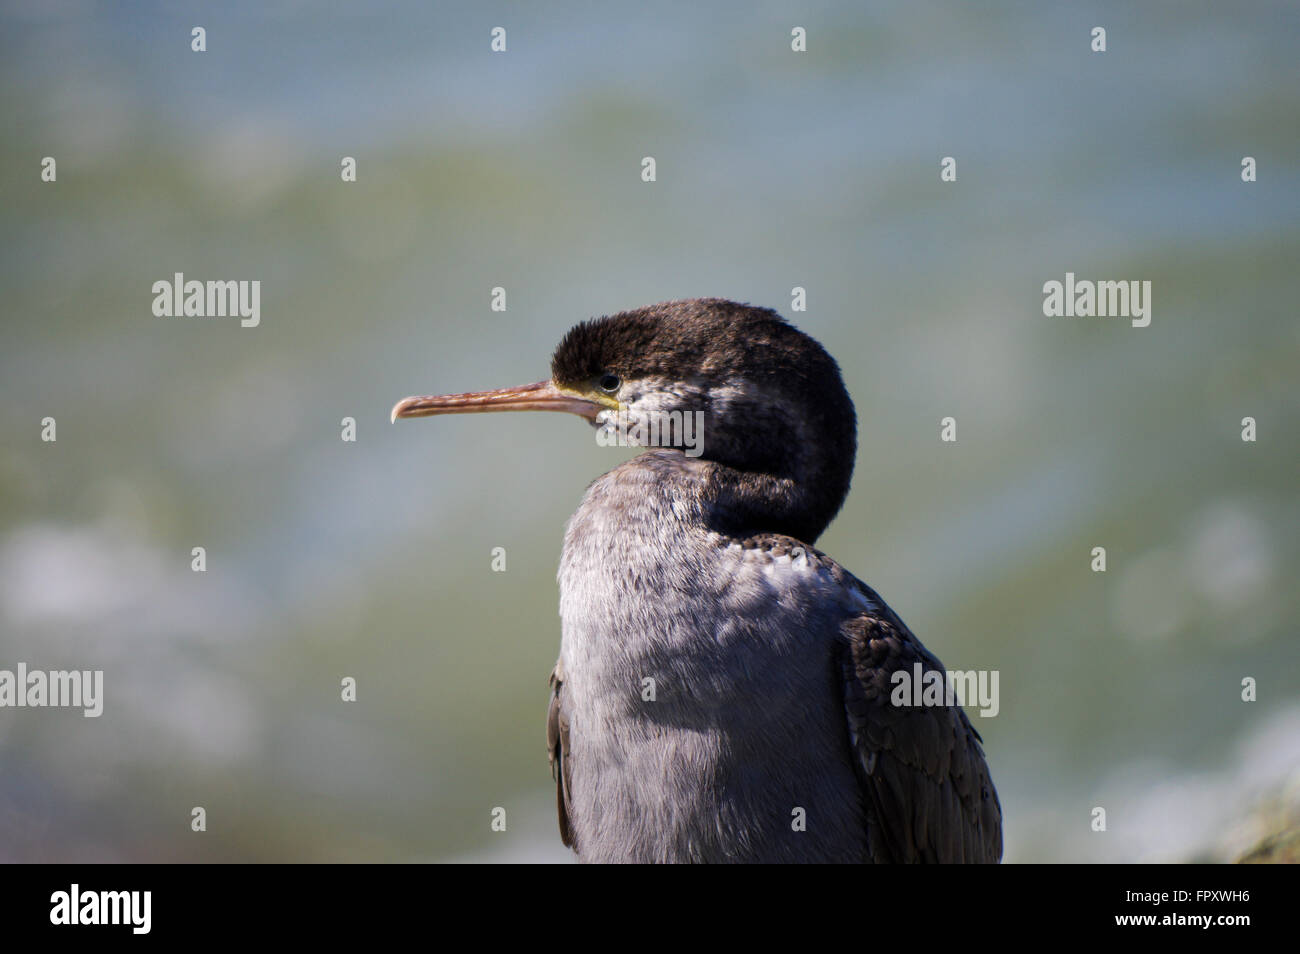 Juvenile spotted shag in Howells Point Recreational Reserve - Riverton, New Zealand - Stock Image